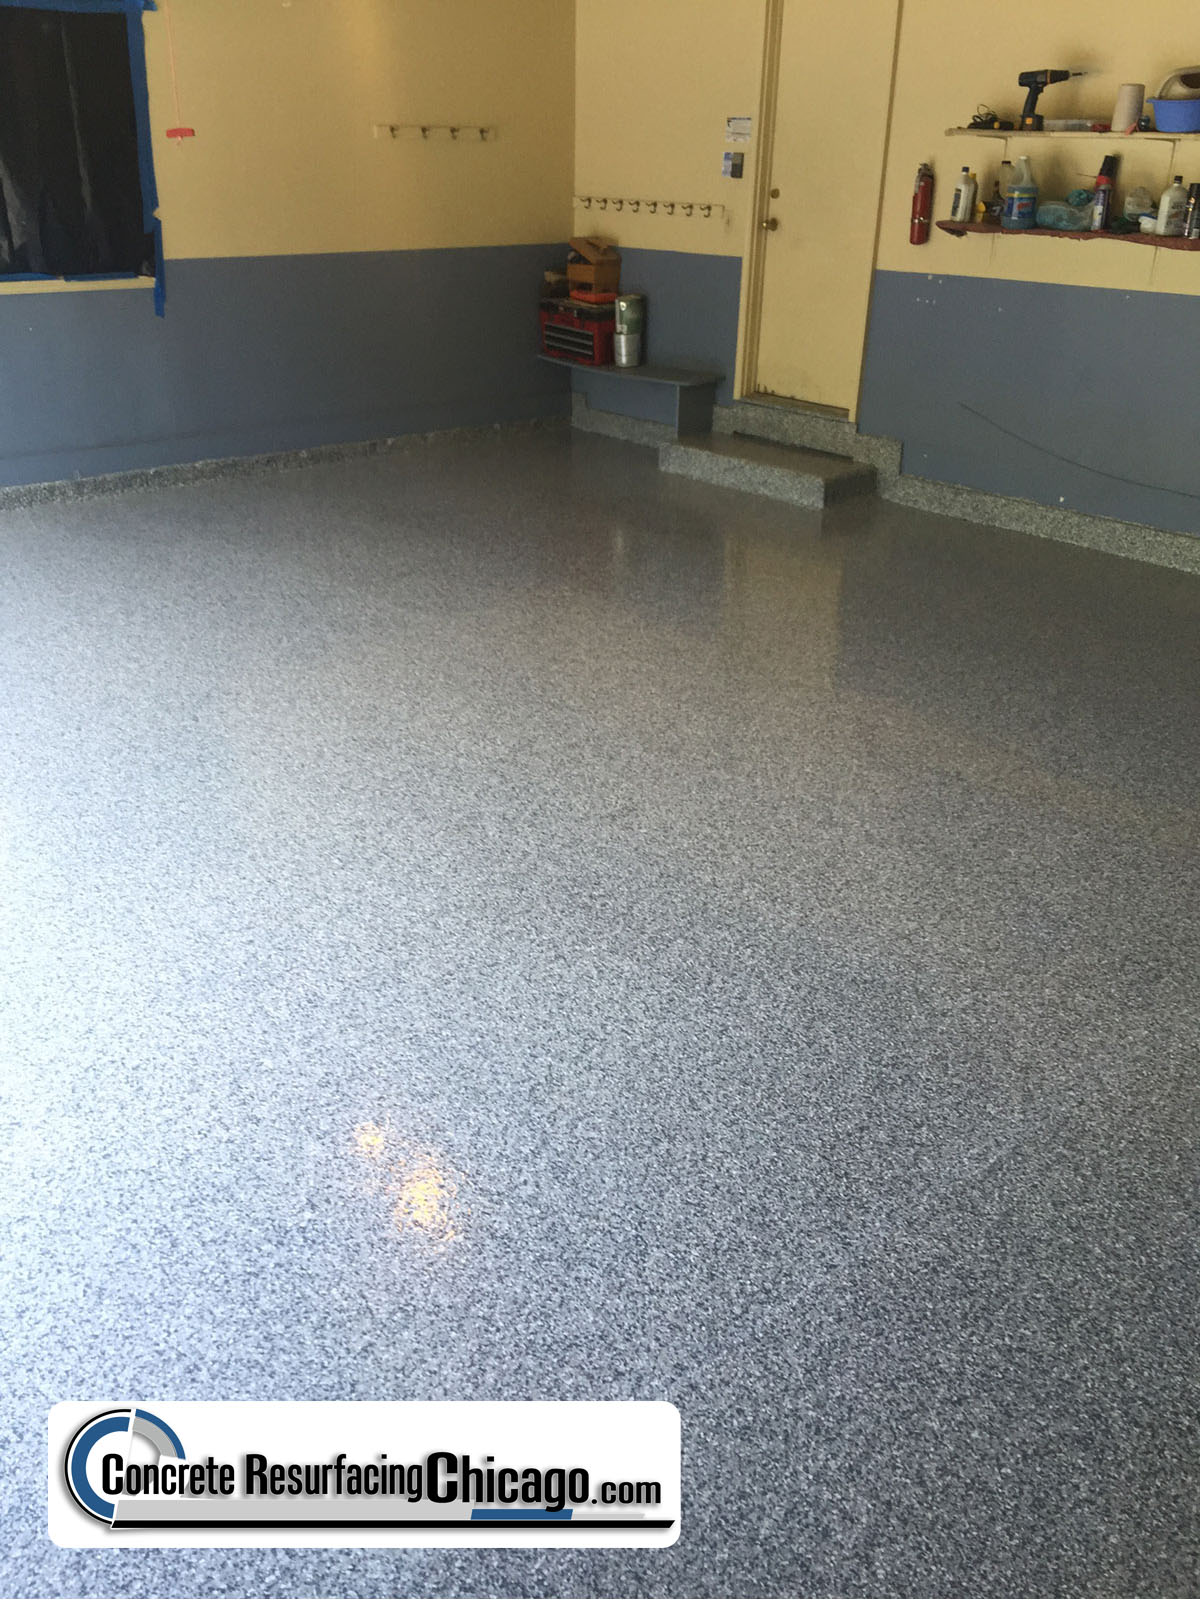 630-448-0317 - Flake Floors Concrete Resurfacing Solutions Serving Chicagoland